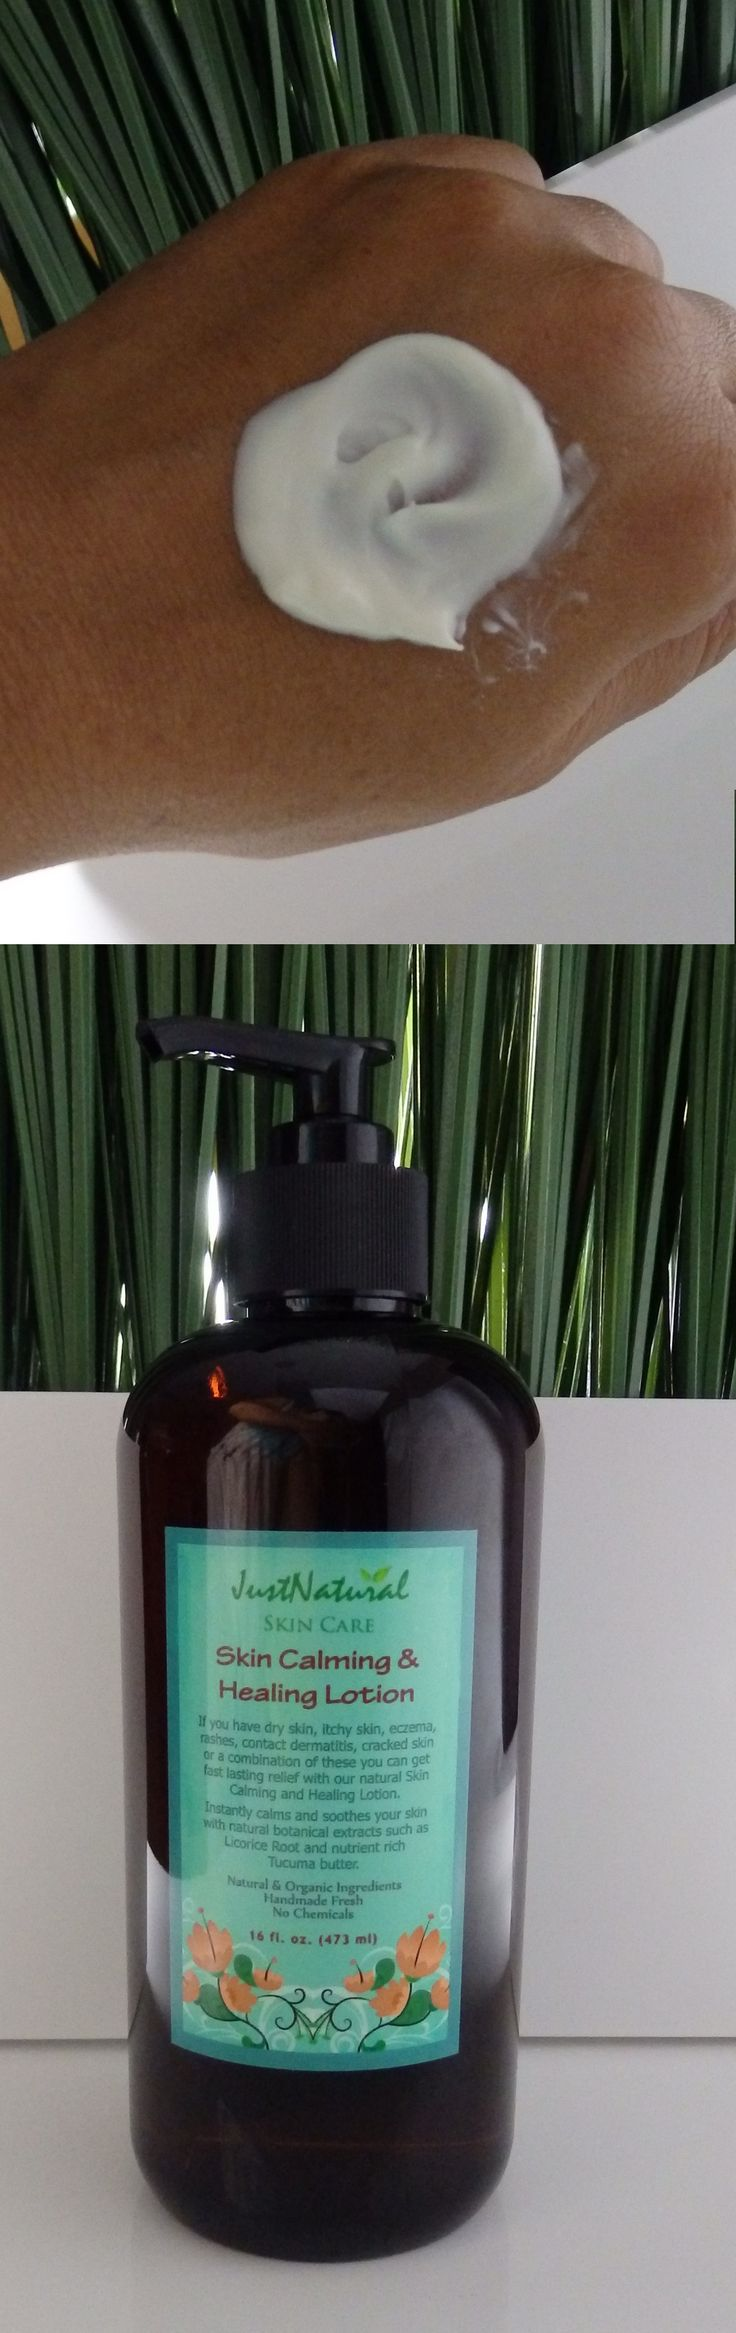 This lotion is very easy to apply as it penetrates quickly into my skin which is a big plus. It hydrates and moistures my dry skin. I don't know how to explain this but it feels and looks like I did not apply any lotion to my skin, no waxy or sticky residue left behind... it feels like I'm feeding my skin! I like how the scent is light and how soft my skin feels.